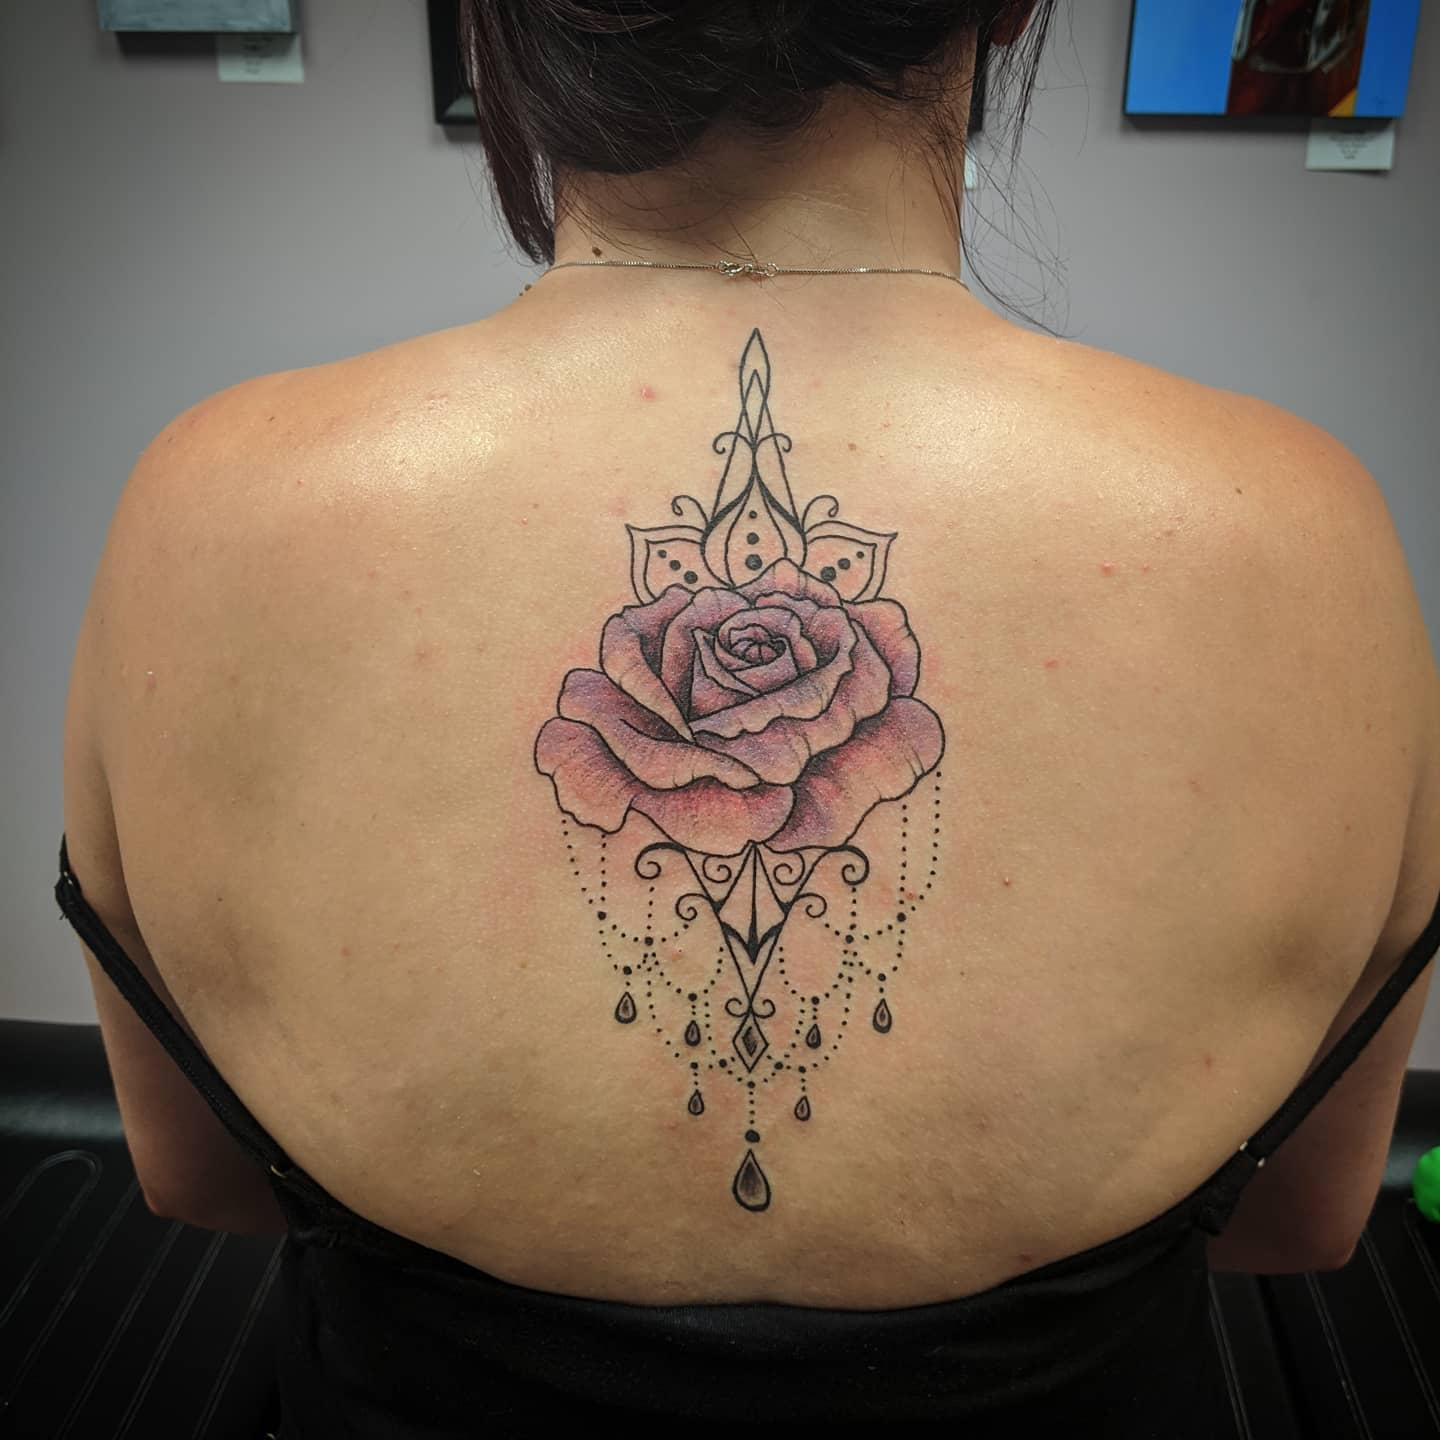 emily-page-tattoo-artist-rose-chandelier